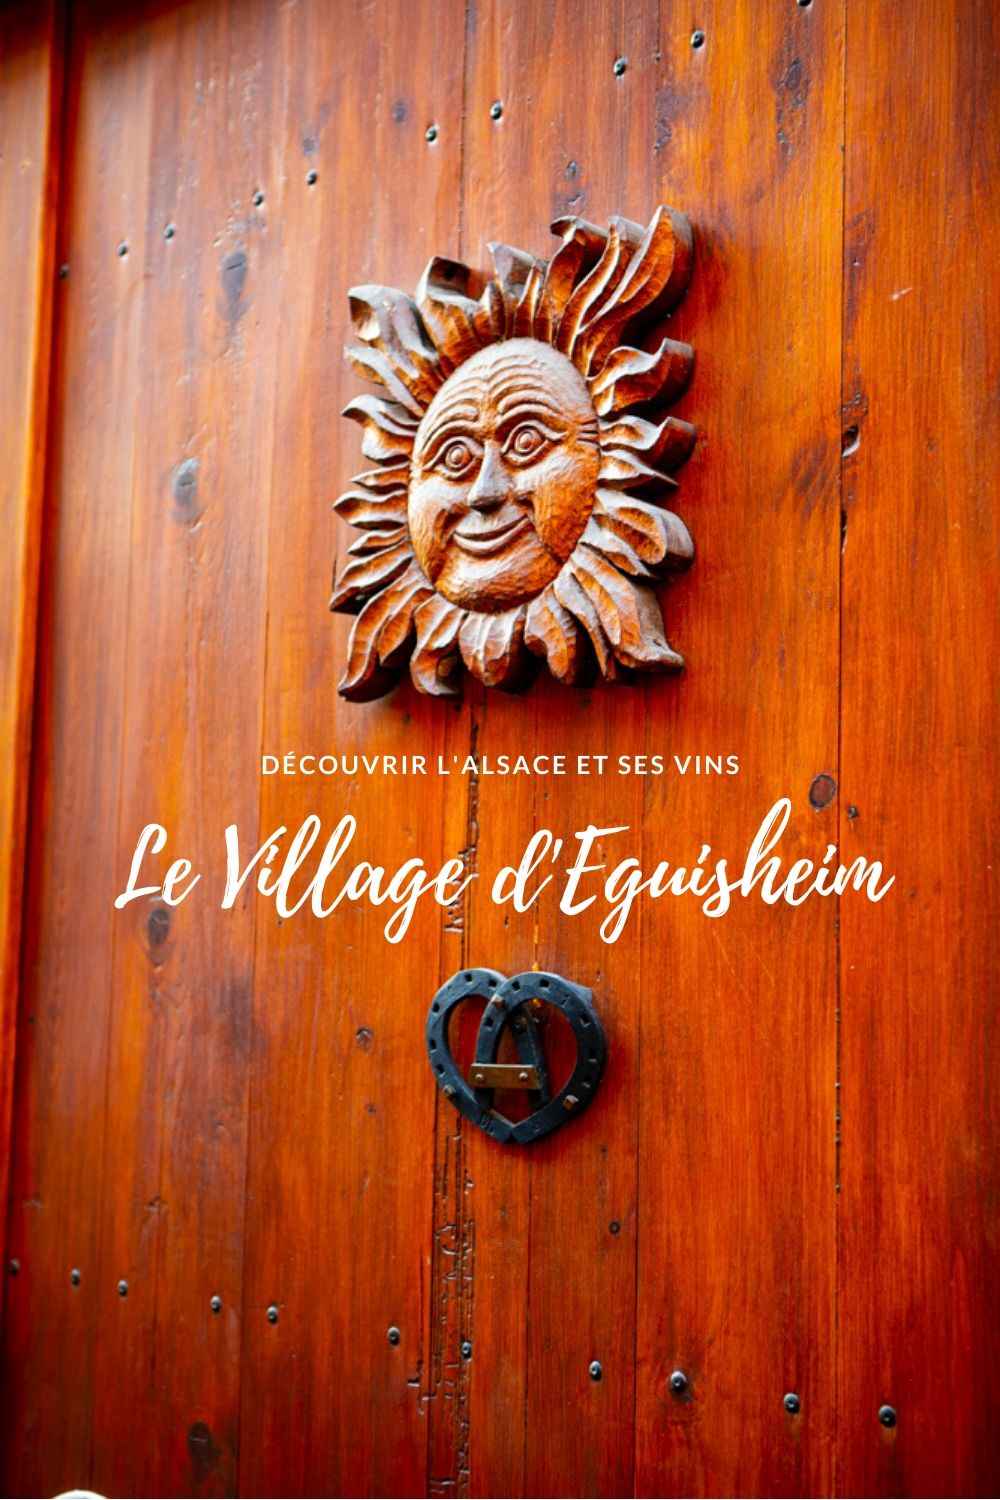 epingle-pinterest-village-d-eguisheim-decouvrir-l-alsace